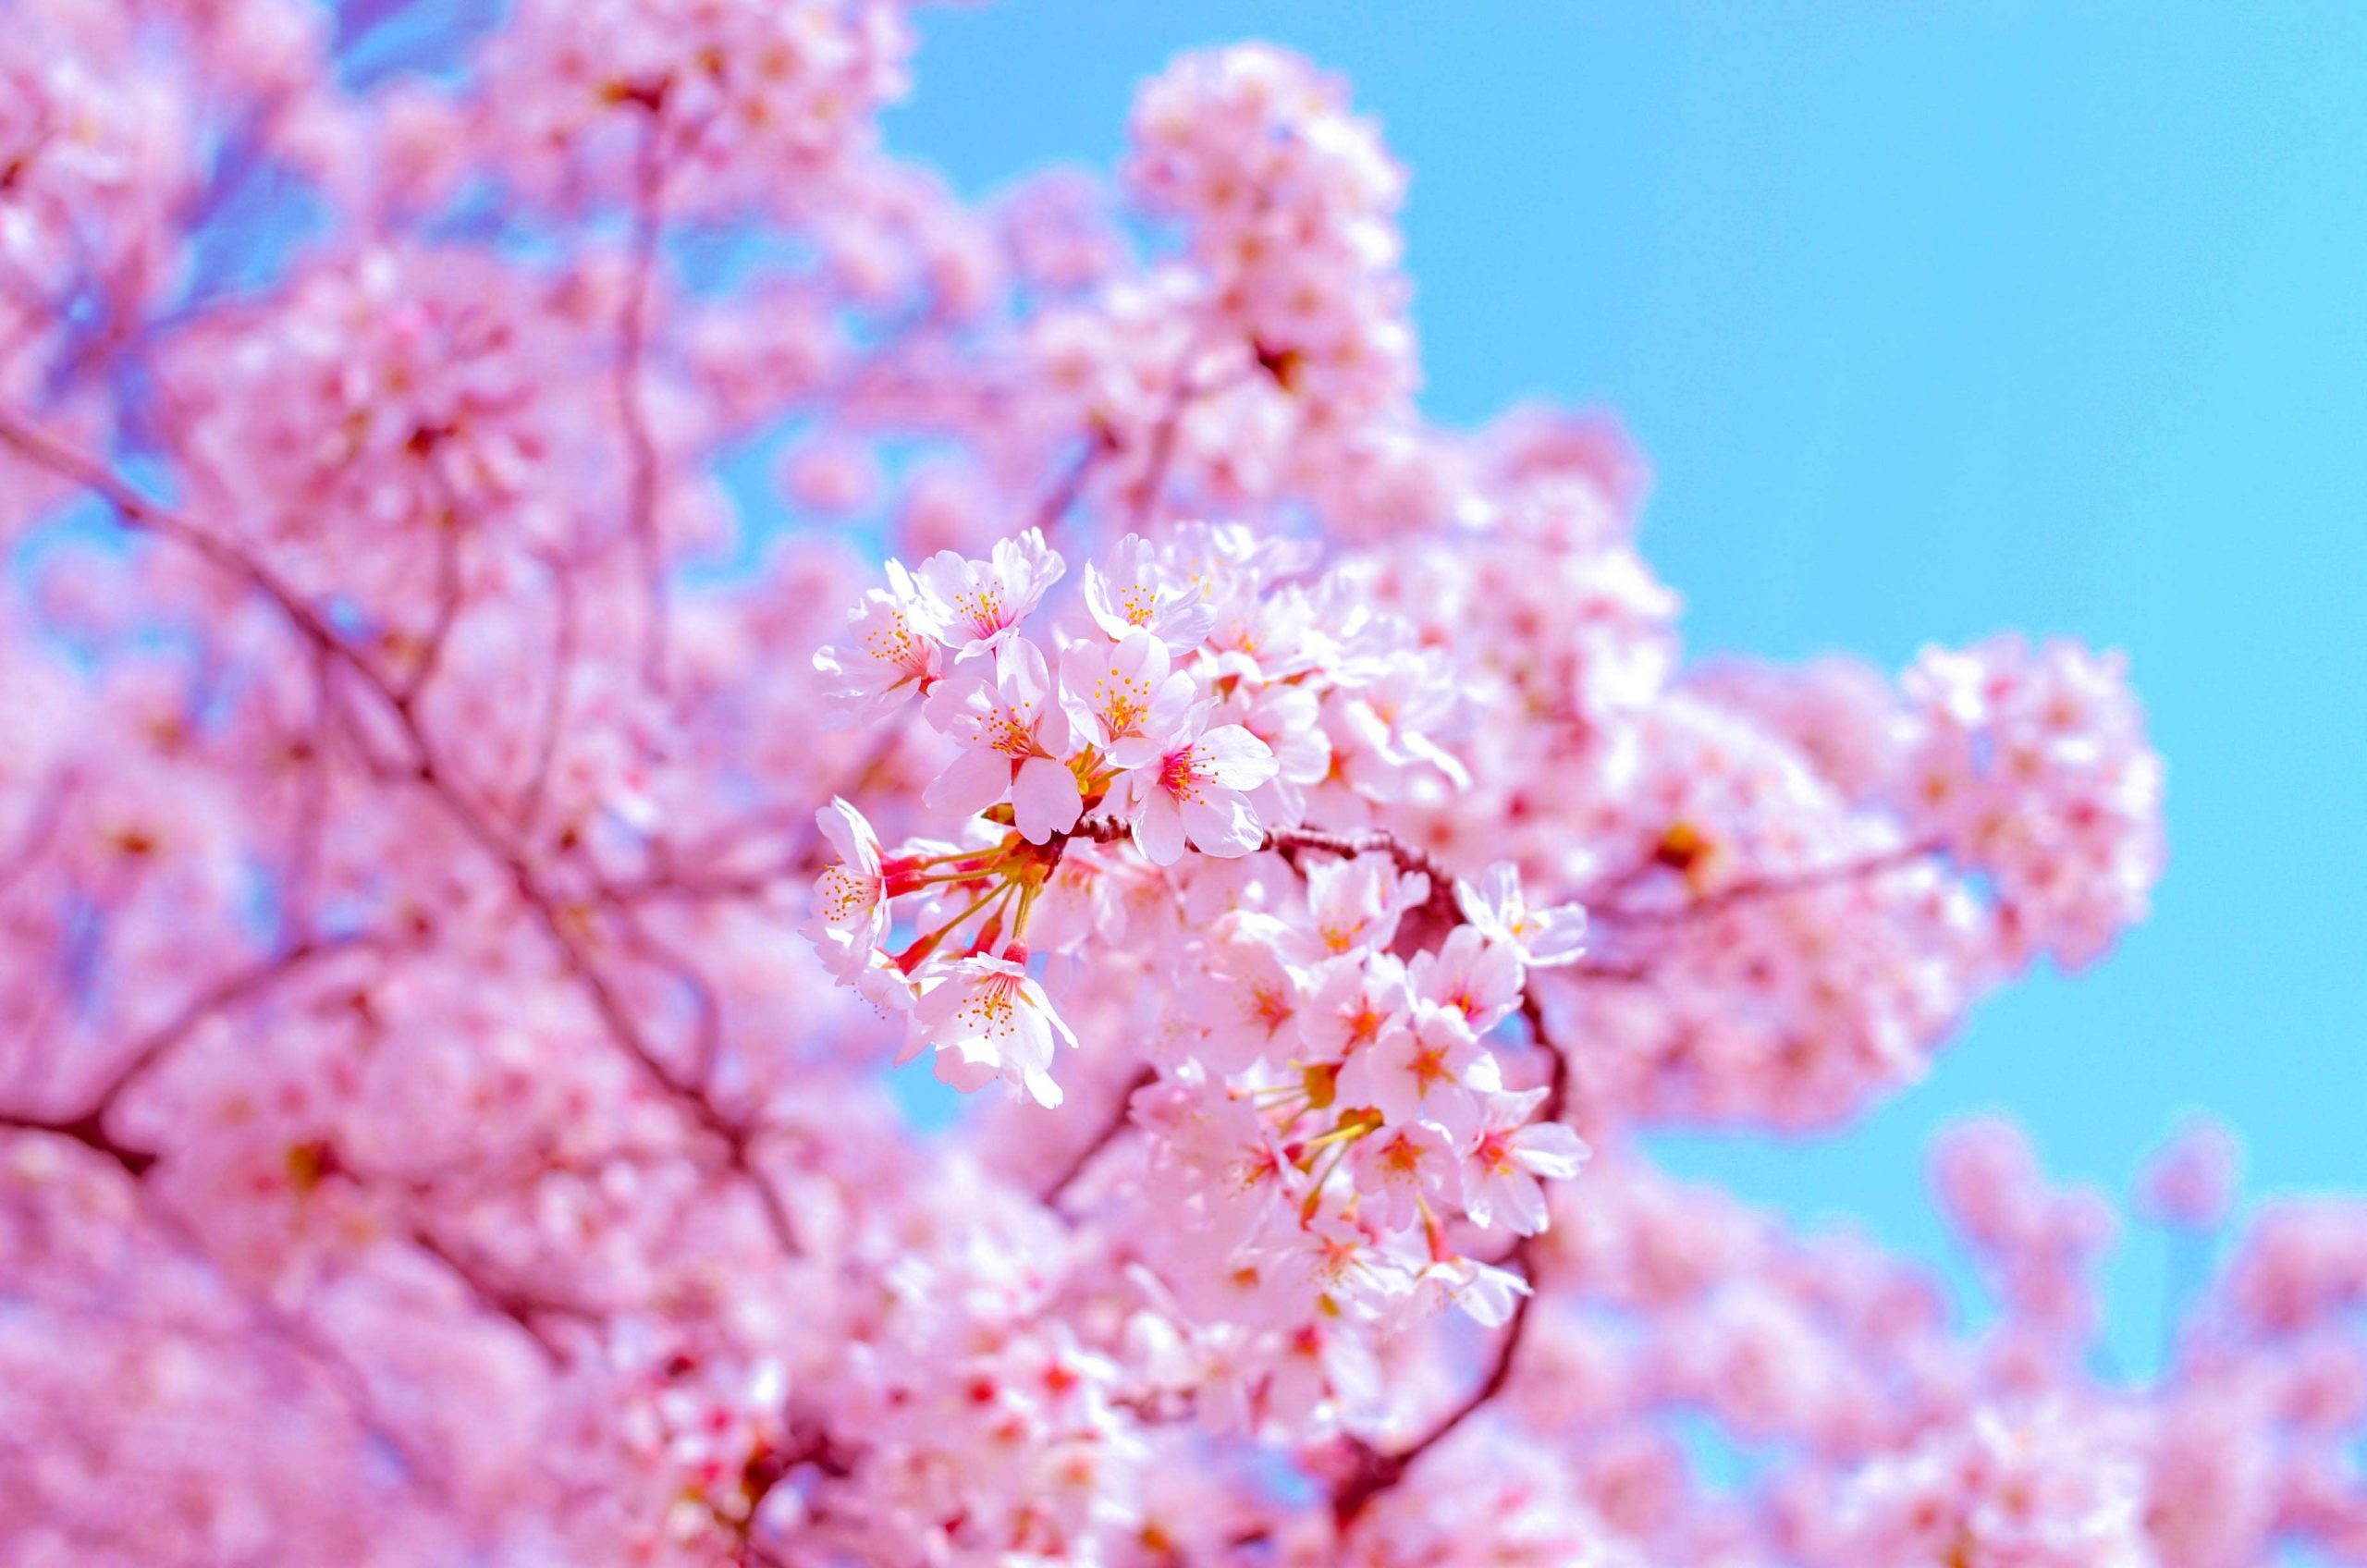 """An image of cherry blossoms or sakura, used as a featured image for the article """"50 Beautiful and Brilliant Quotes about Cherry Blossoms"""" on phmillennia.com"""